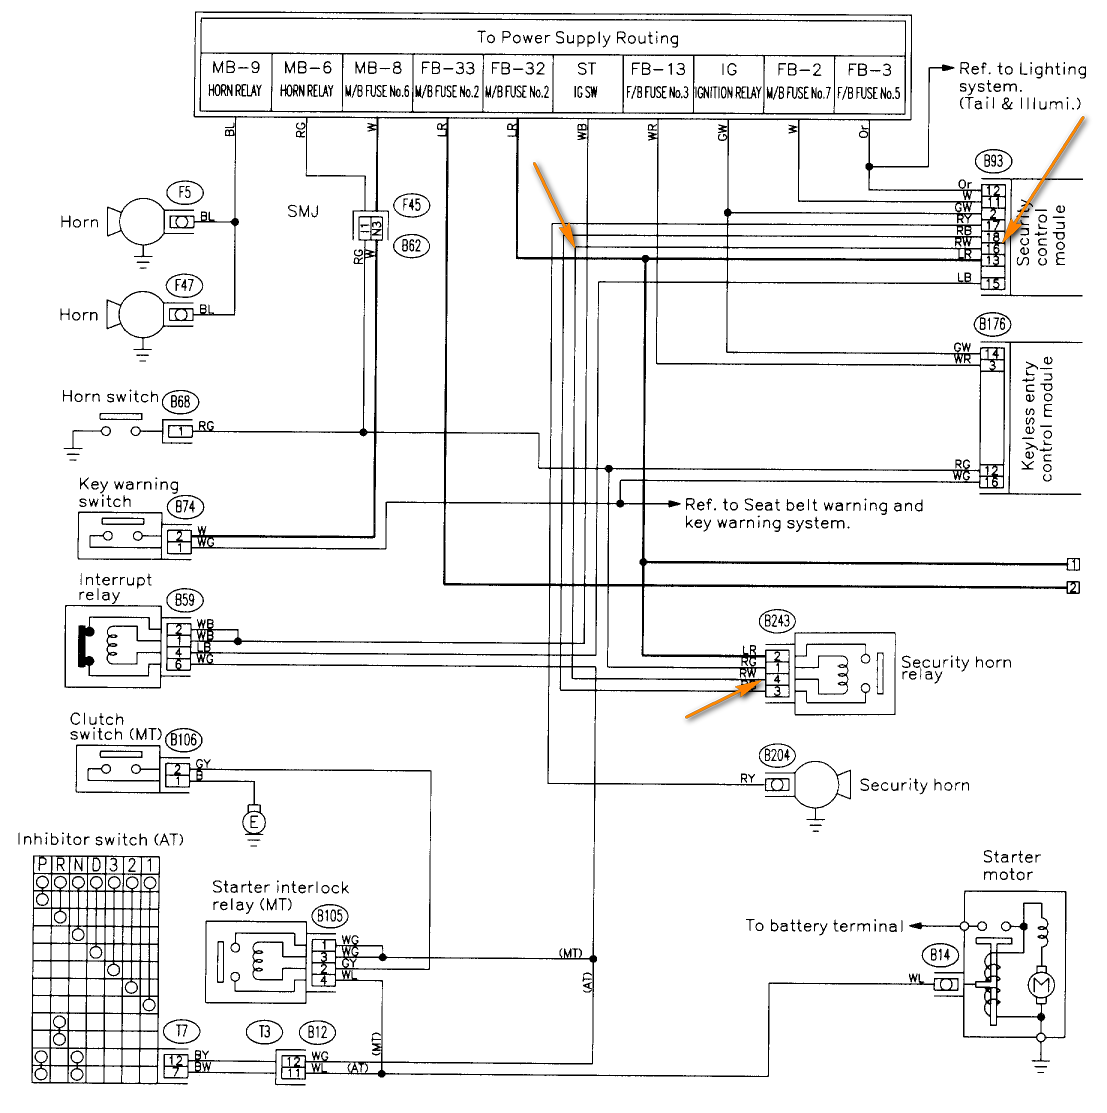 Subaru Alarm Wiring Diagram Library Viper Security Diagrams For Scorpion Car And Home System